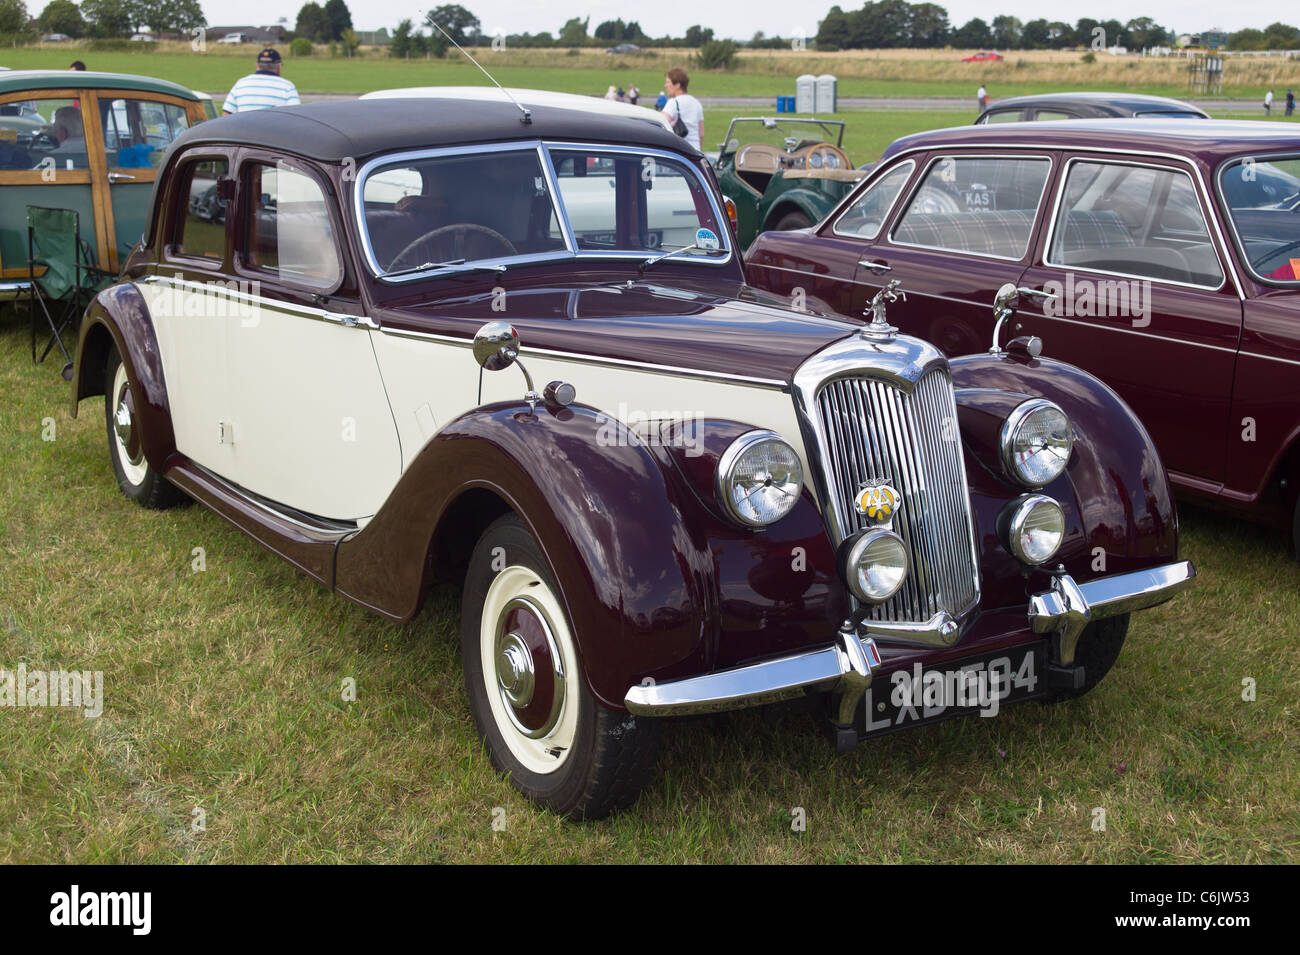 1950S Riley 2.5 RME classic car on show in UK 2011 - Stock Image